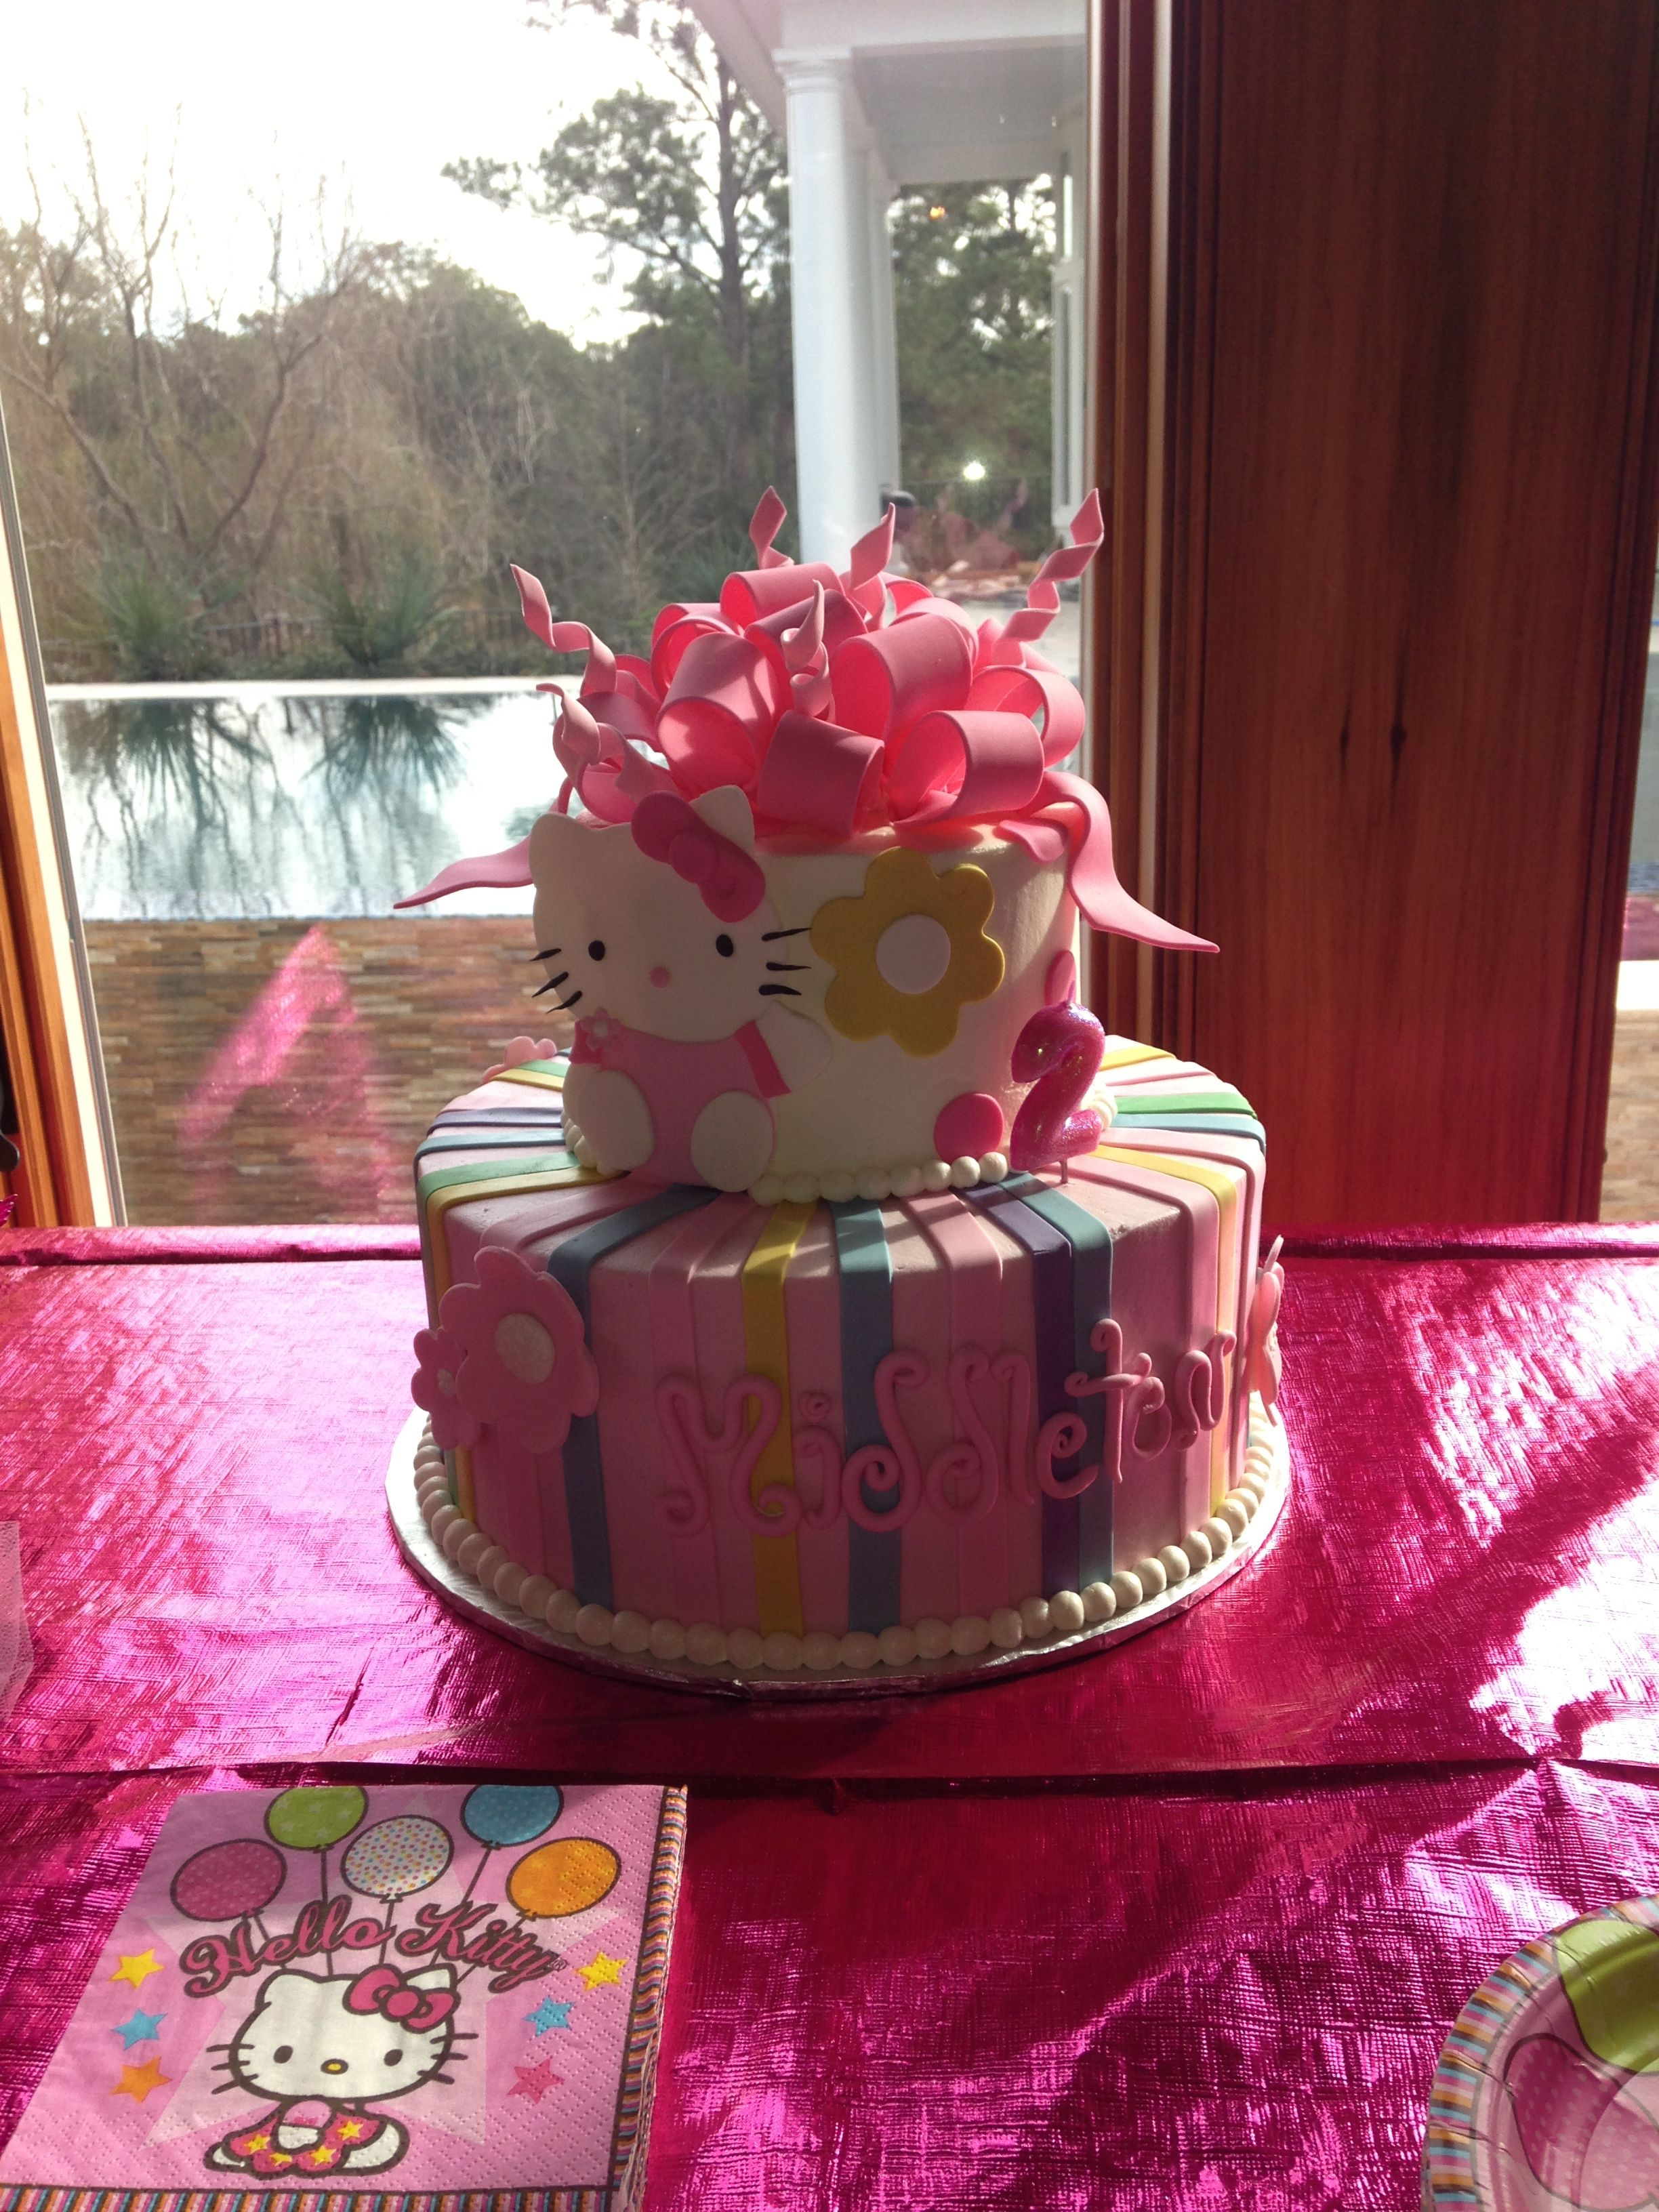 The cake was perfect!